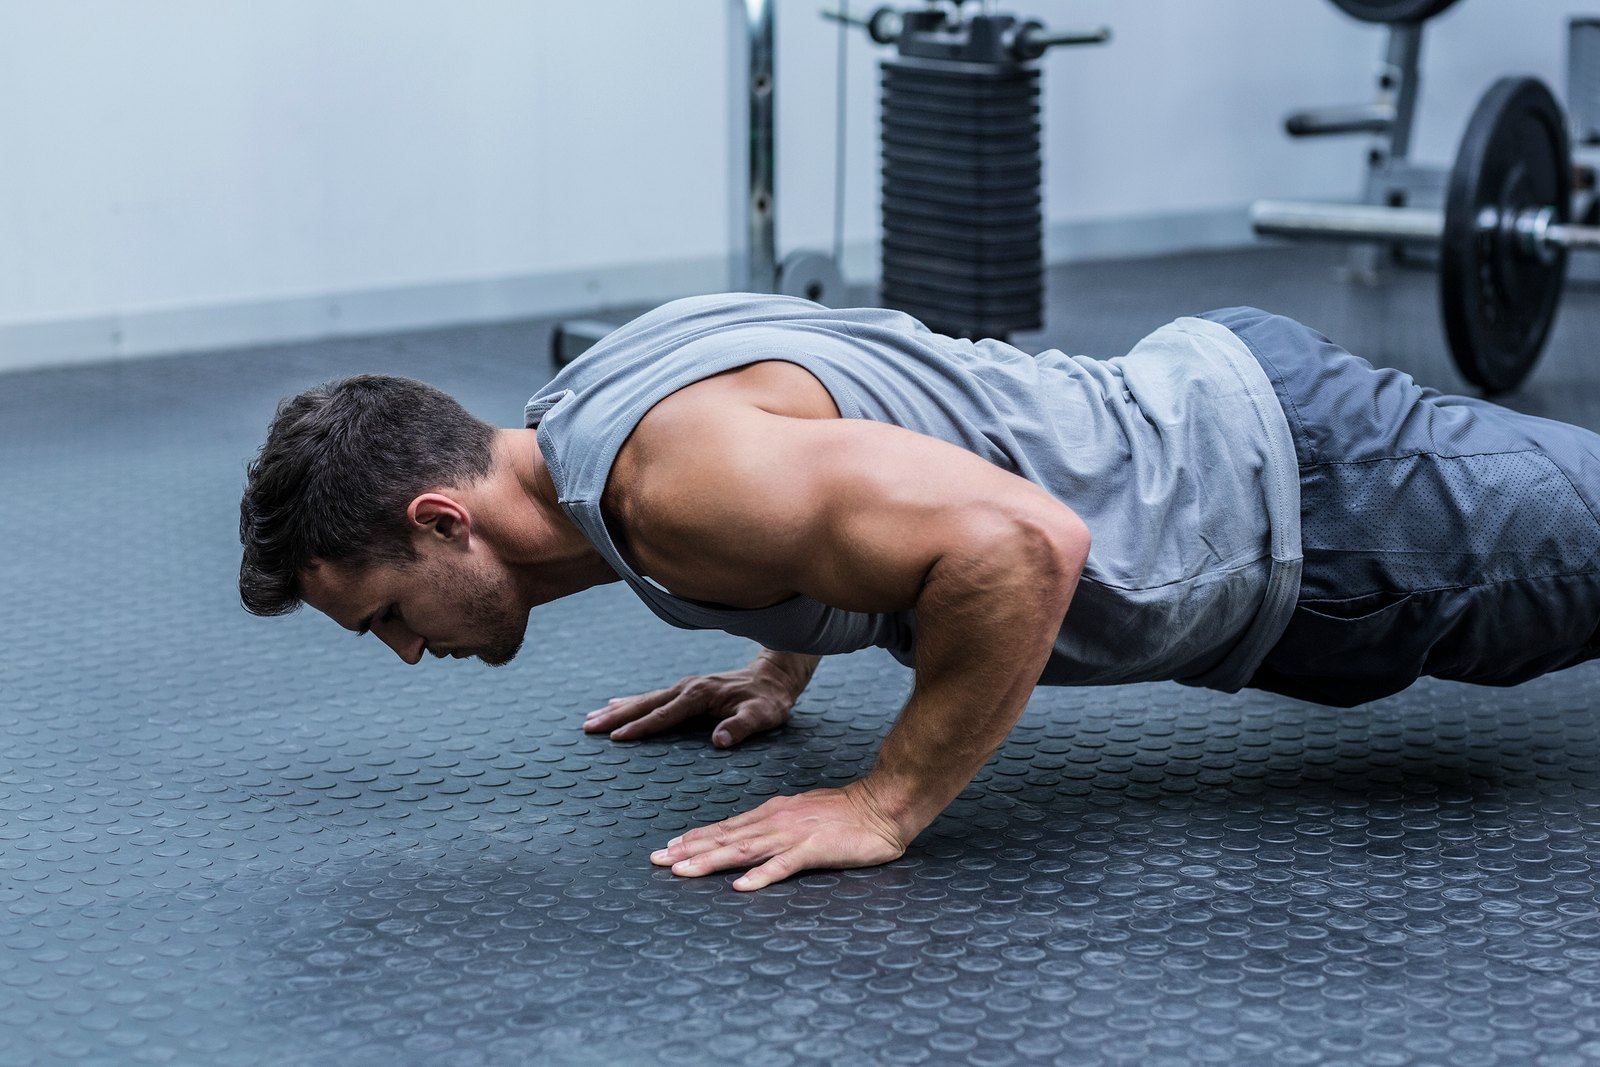 Perform the plank and push-ups to get your CrossFit workout at home!